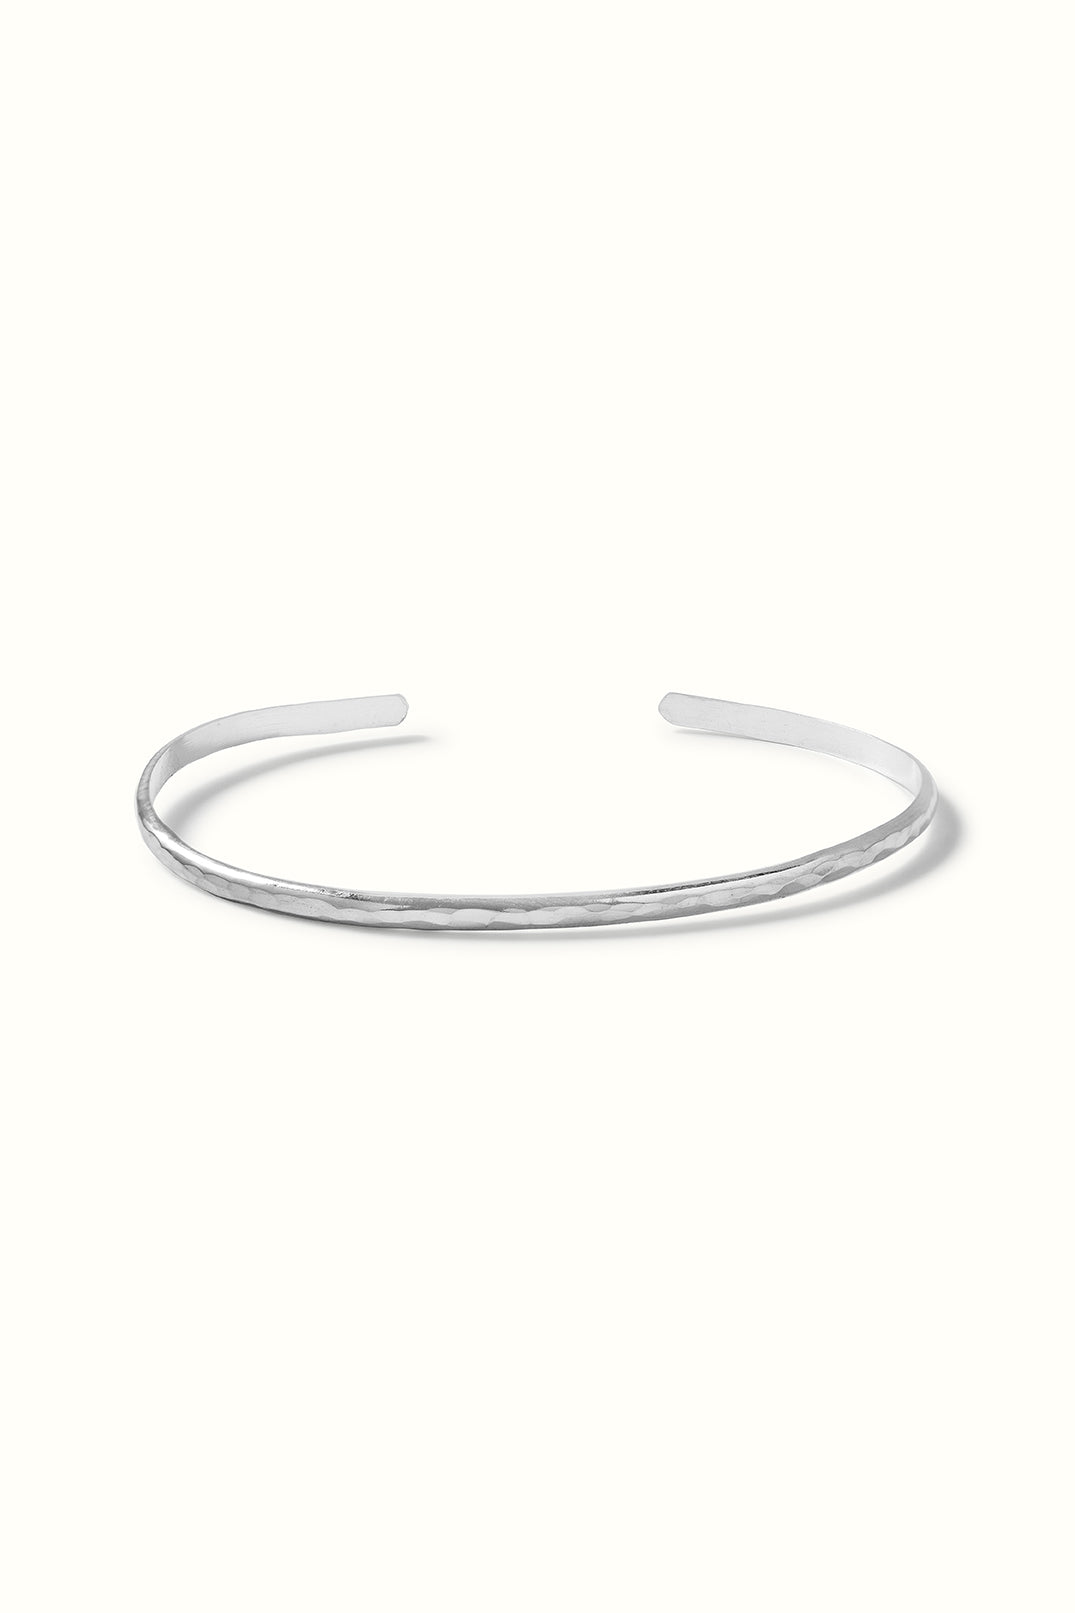 a silver slim cuff bracelet lying on a white surface